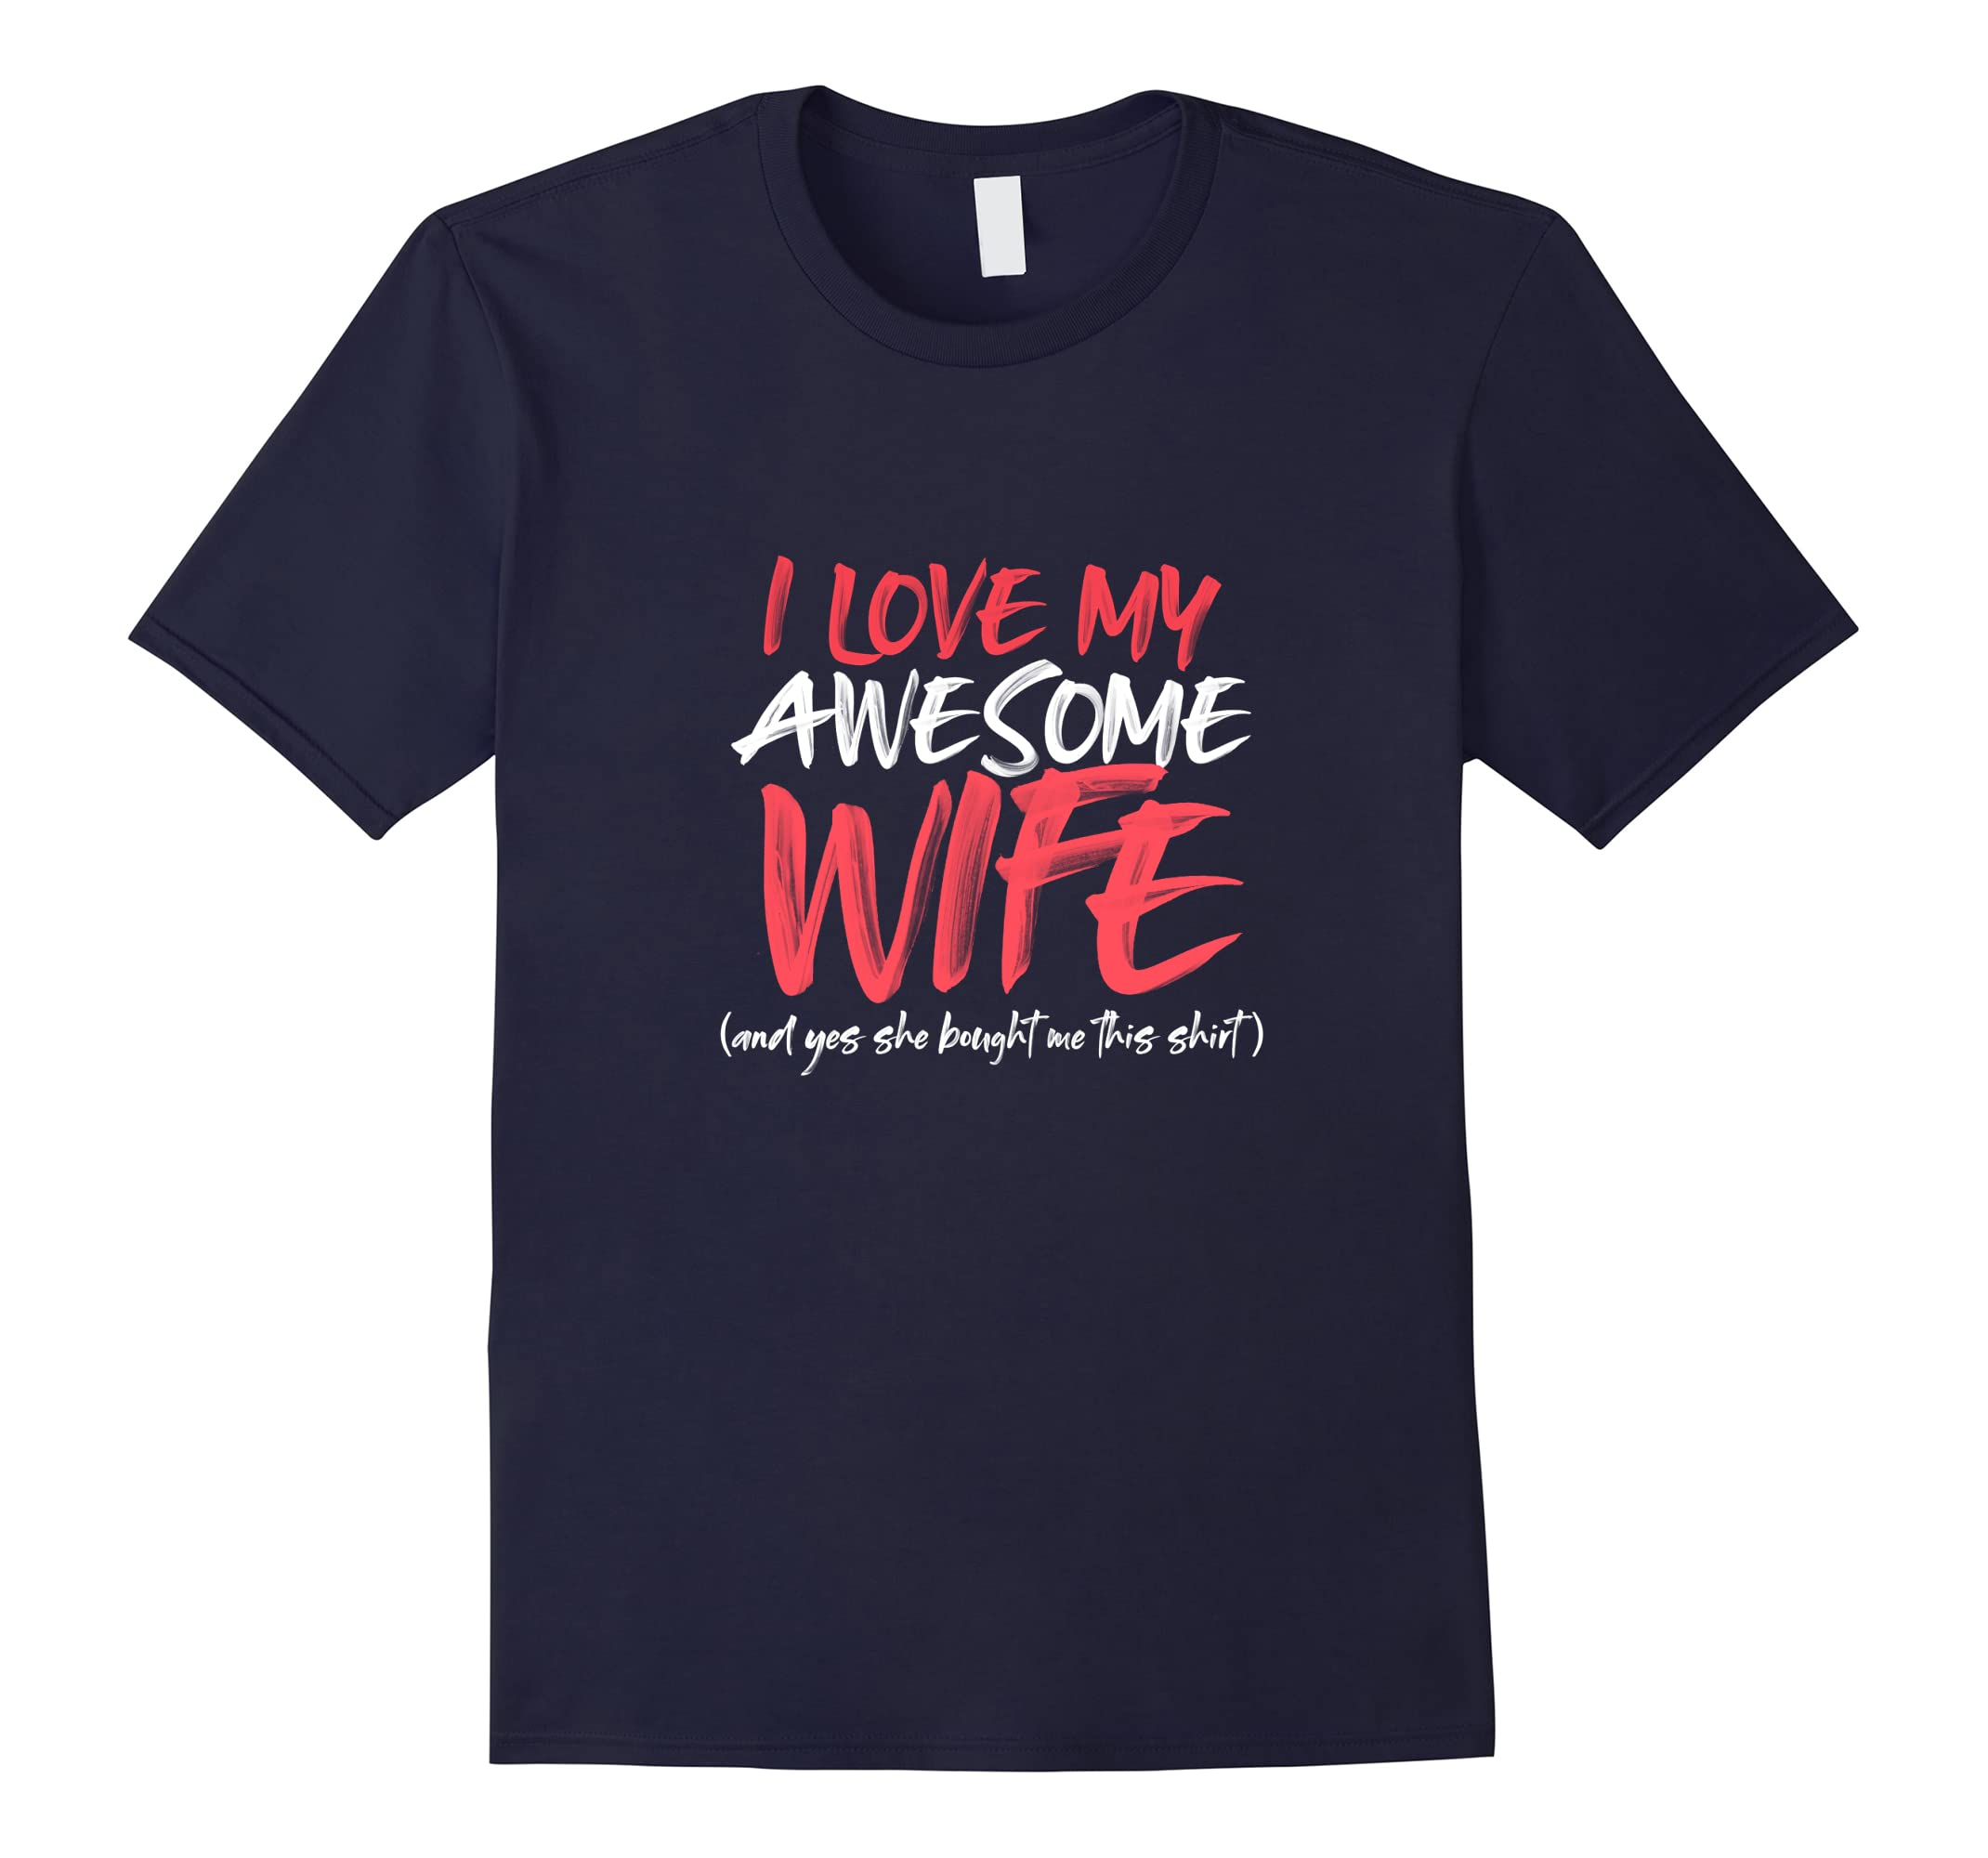 Funny Valentines Day Shirt Gift for Him I Love My Wife-ah my shirt one gift